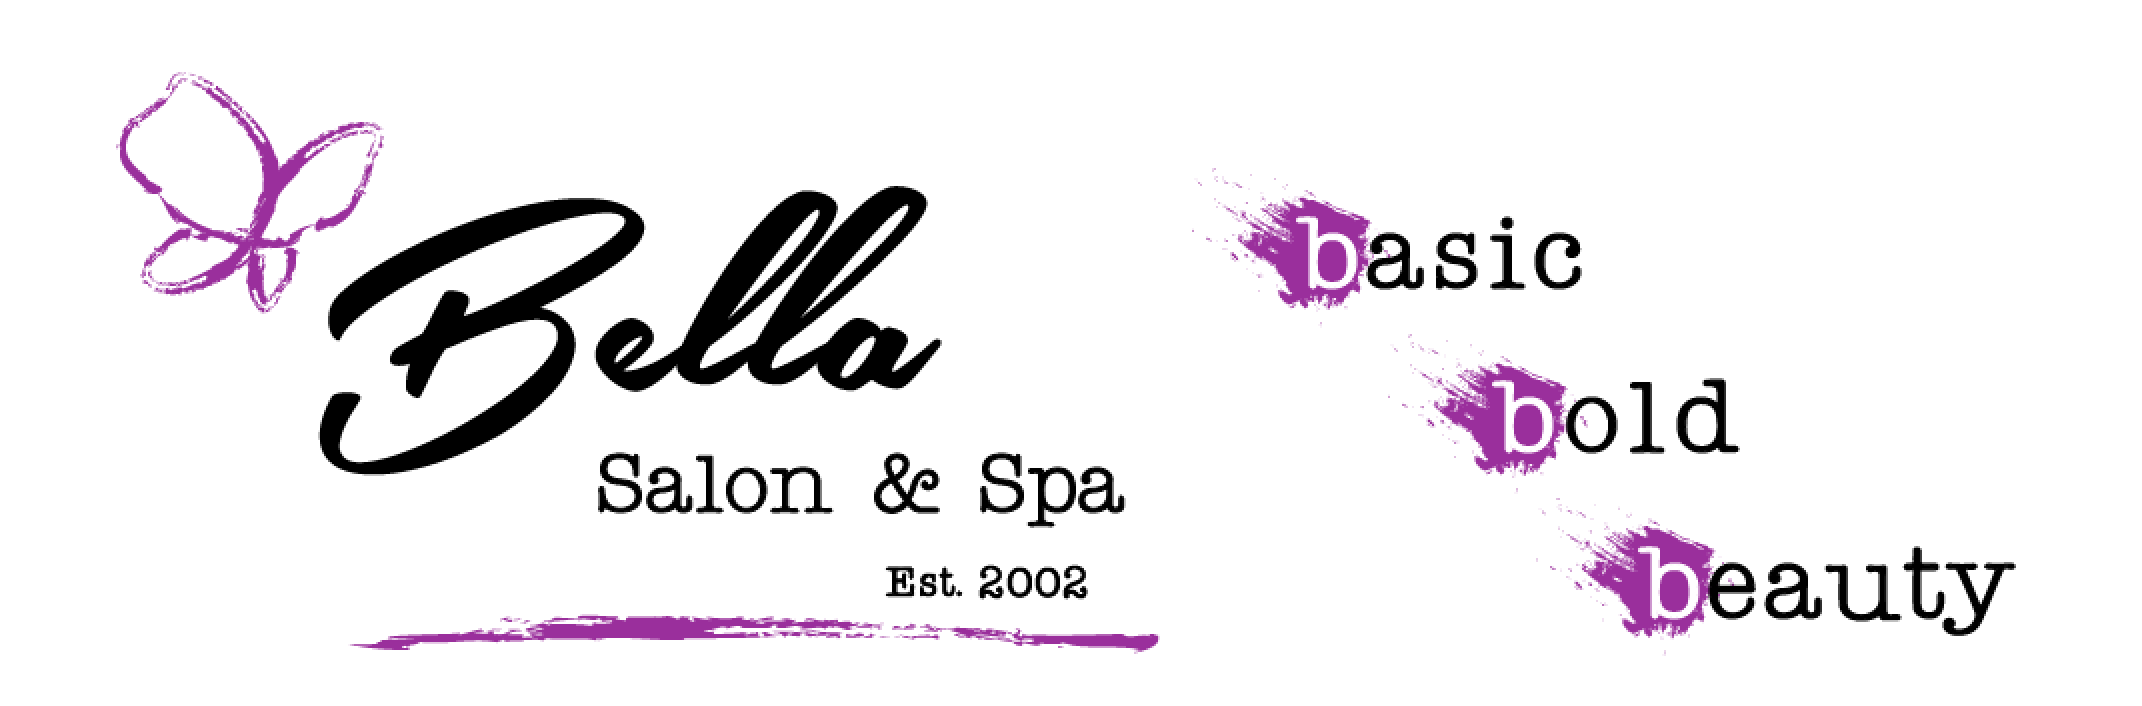 Bella logo with basic bold beauty